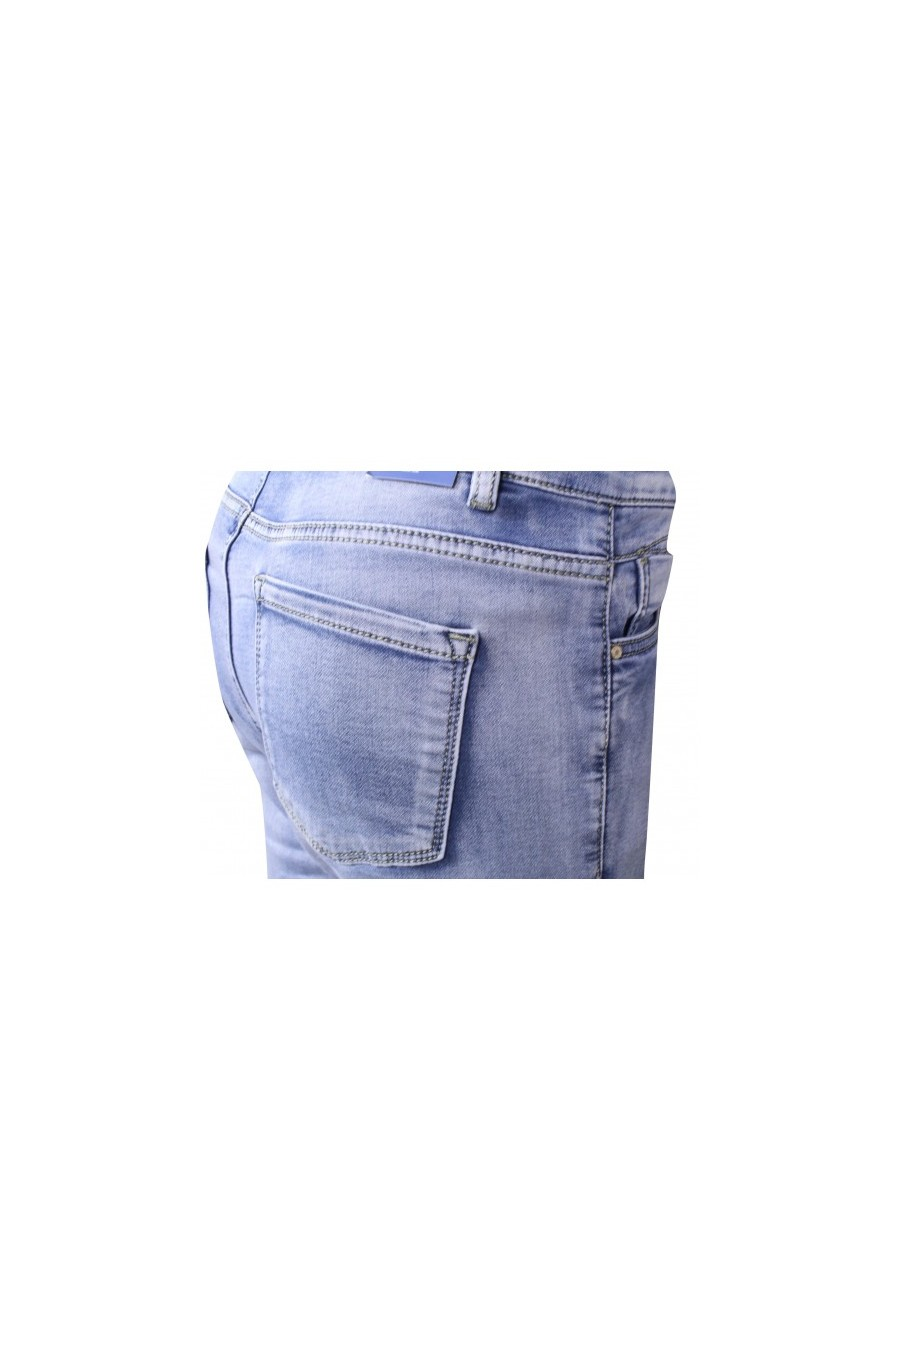 Norfy stretch jeans lichte washing Norfy